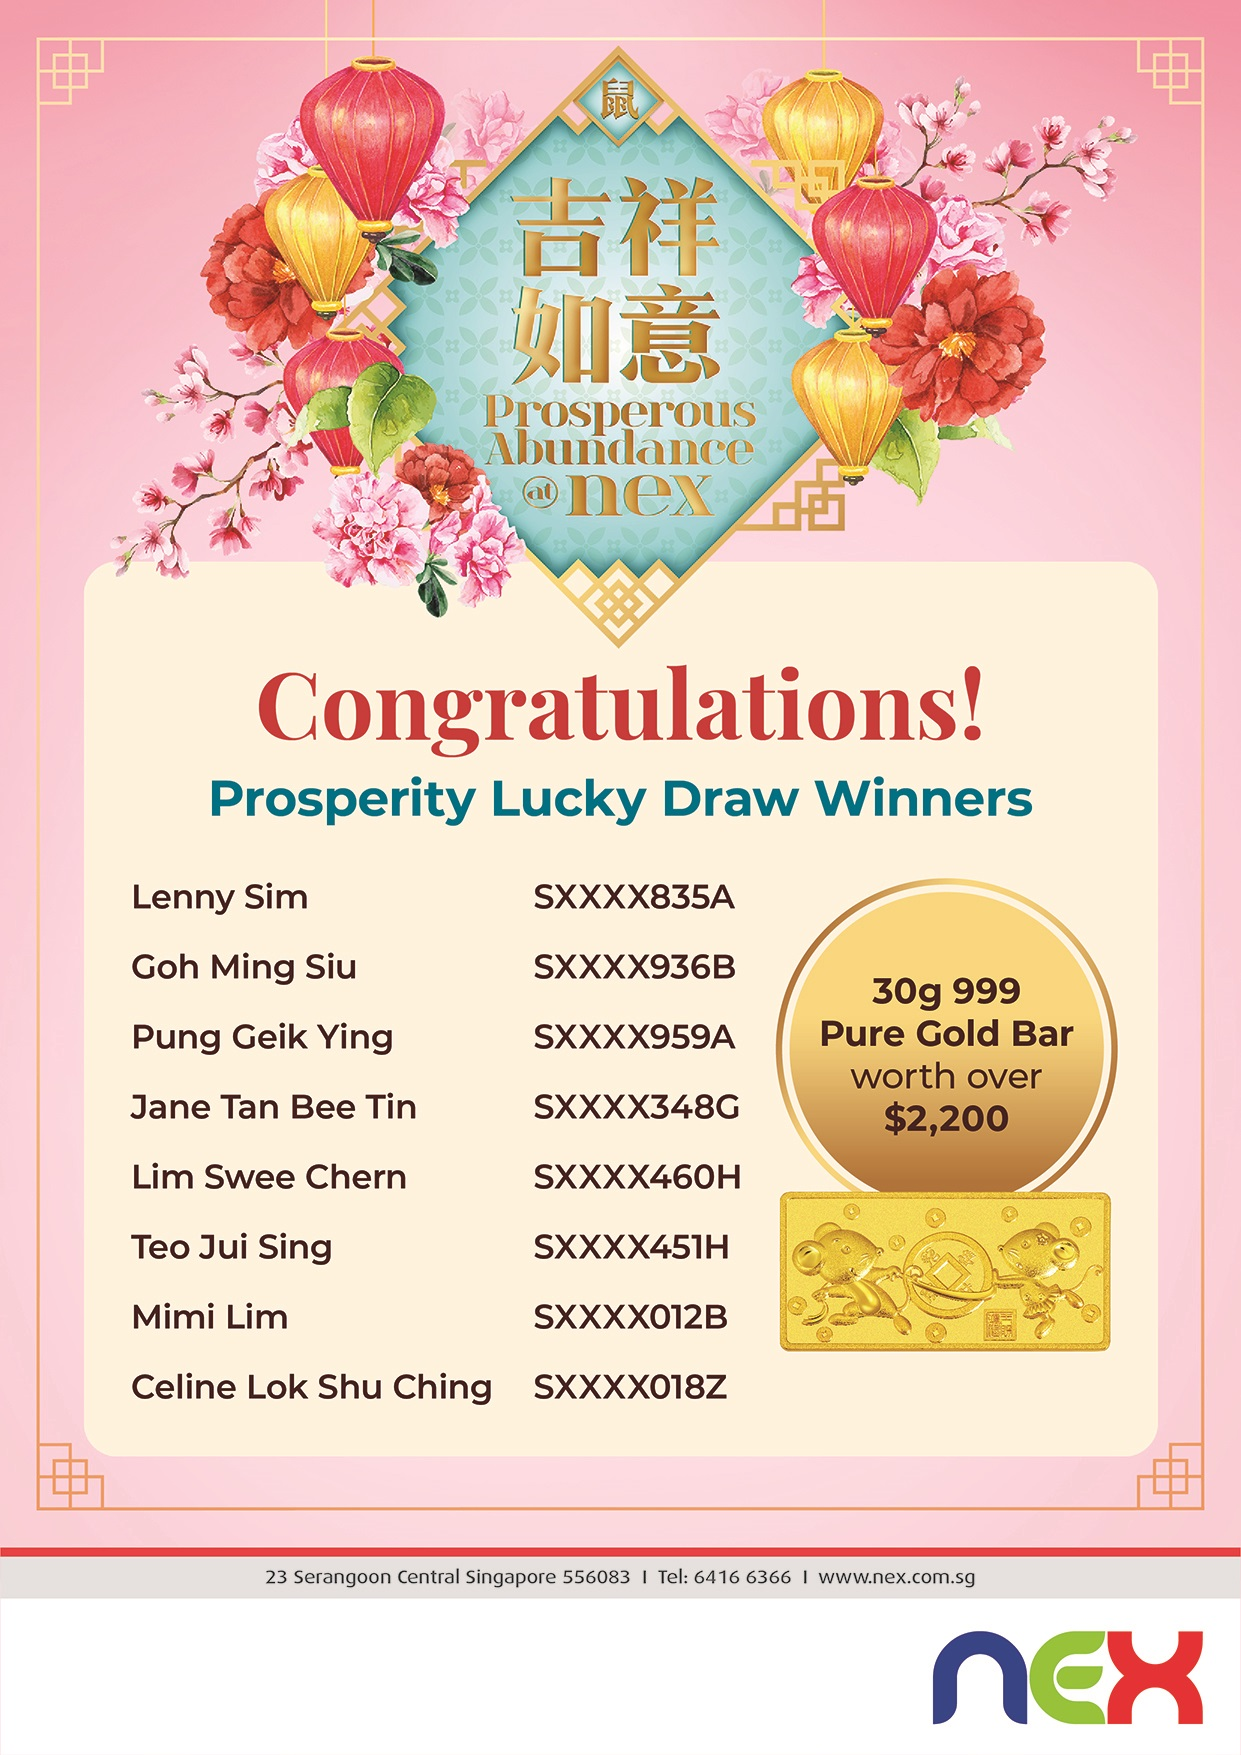 4609NEX_Lunar New Year 2020_A4 Lucky Draw Winners Result_FINAL